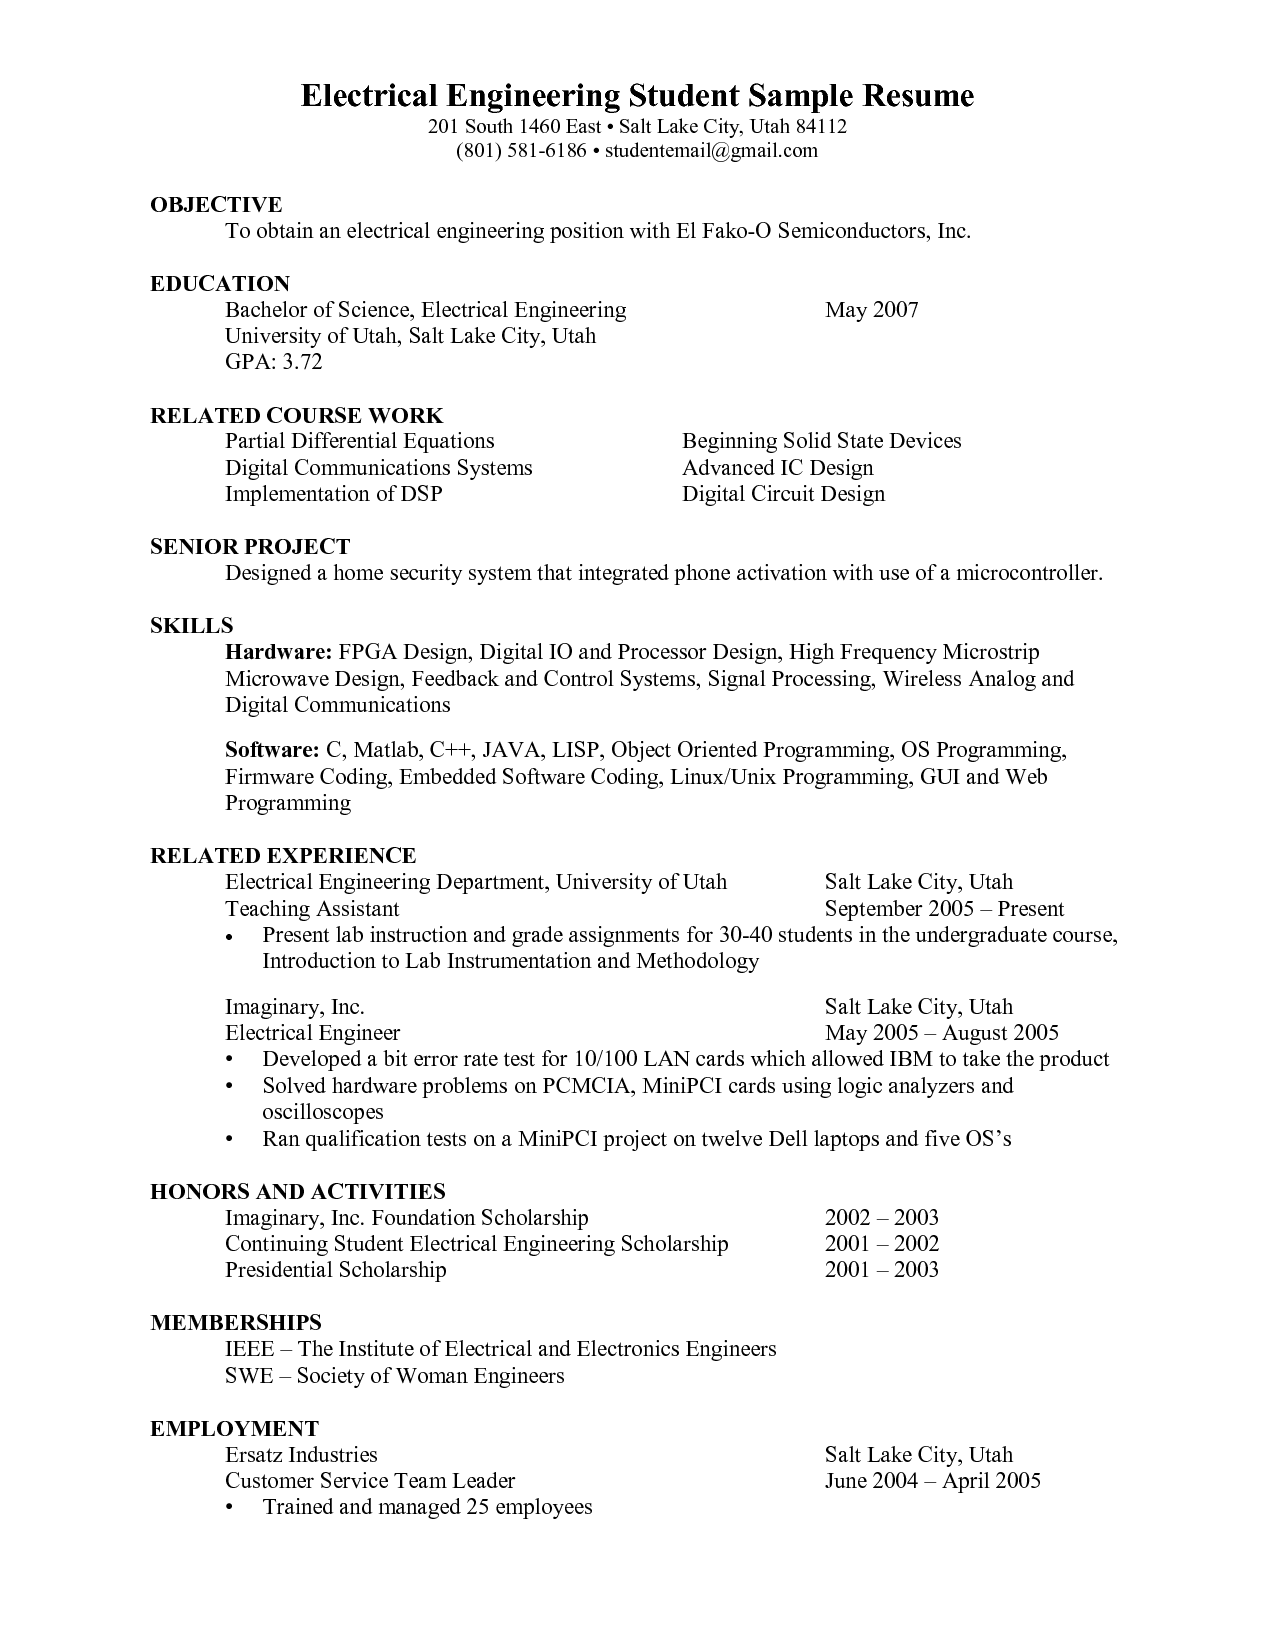 engineering student resume google search resumes student resume